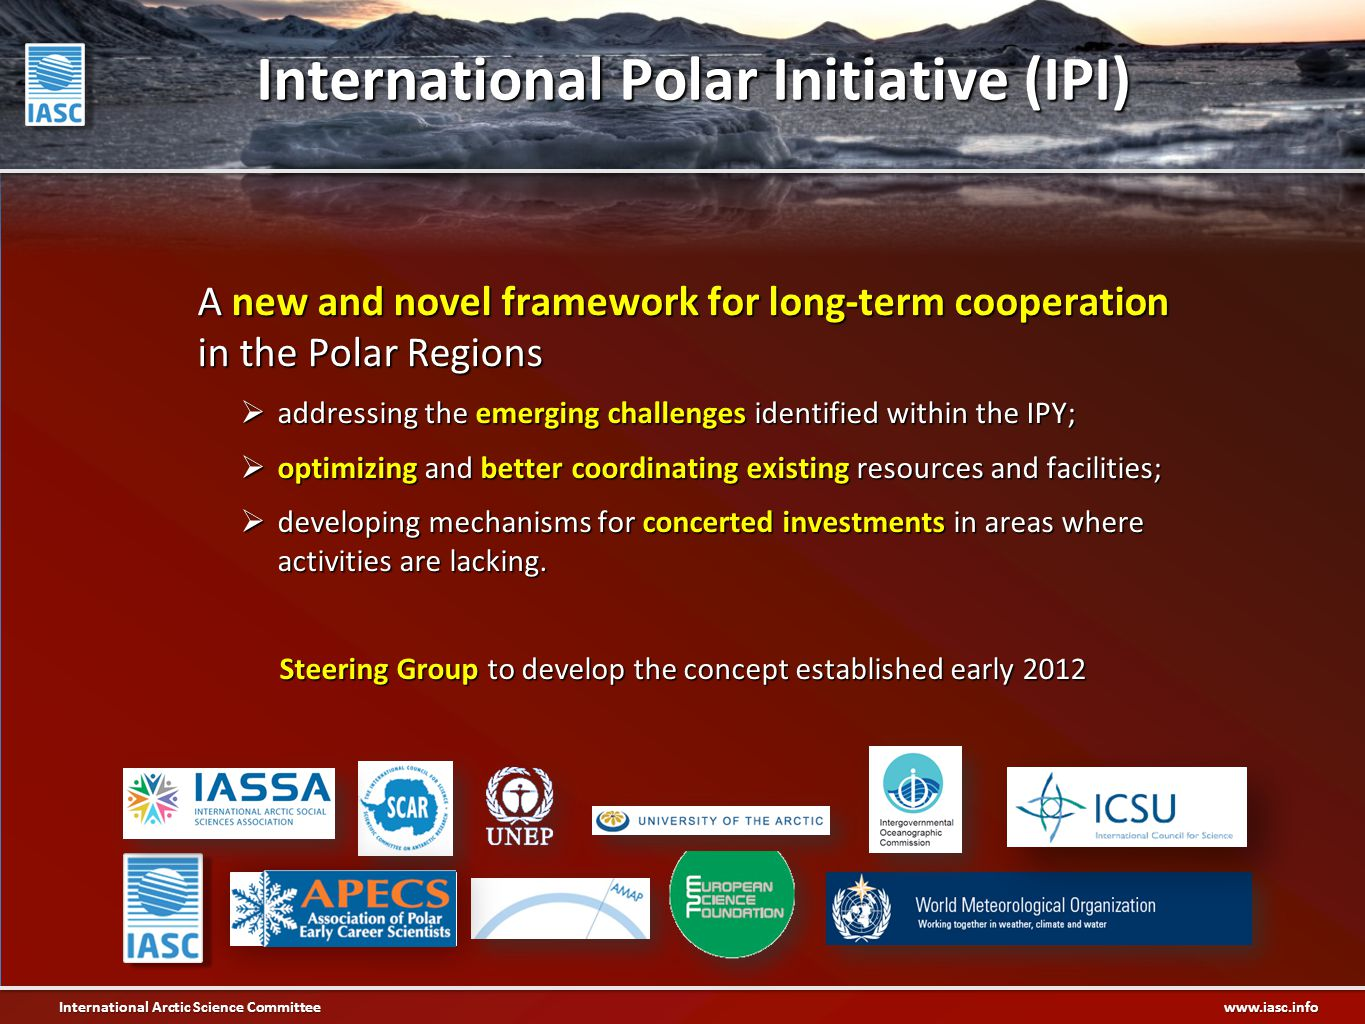 International Arctic Science Committee www.iasc.info International Polar Initiative (IPI) A new and novel framework for long-term cooperation in the Polar Regions  addressing the emerging challenges identified within the IPY;  optimizing and better coordinating existing resources and facilities;  developing mechanisms for concerted investments in areas where activities are lacking.